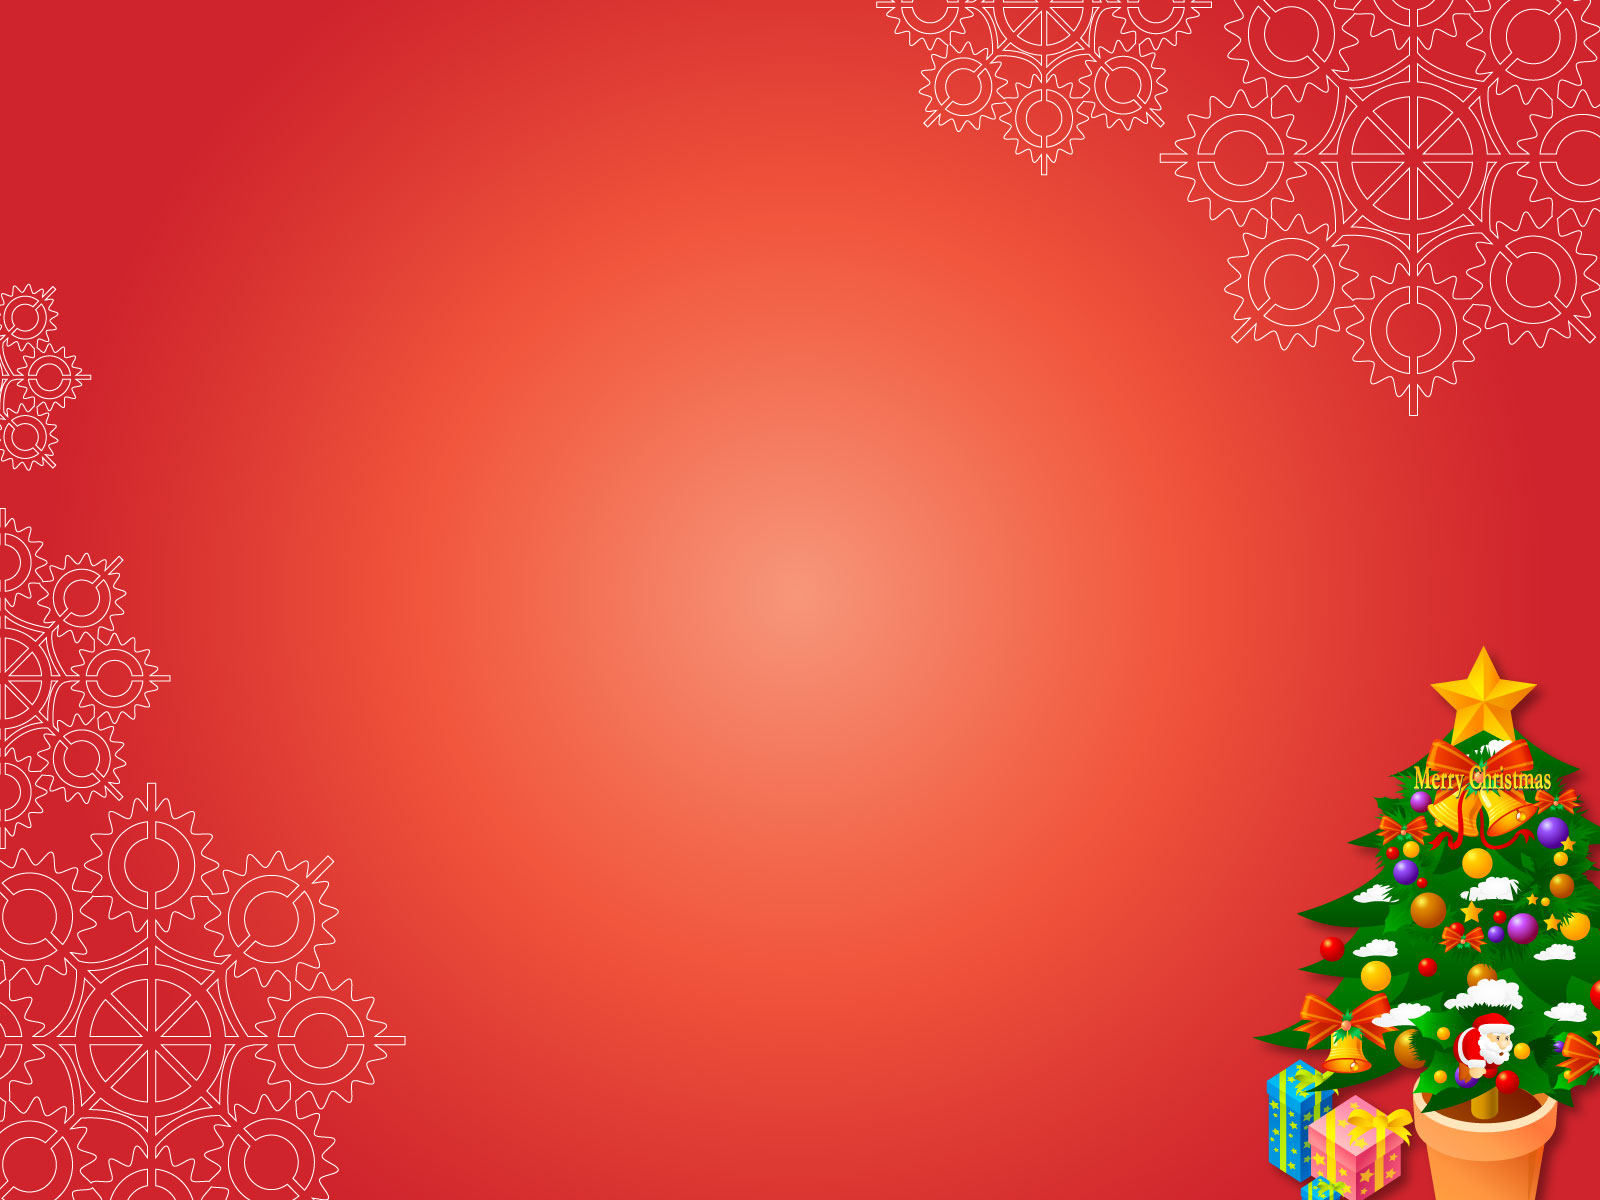 Download HD Christmas & New Year 2017 Bible Verse ...